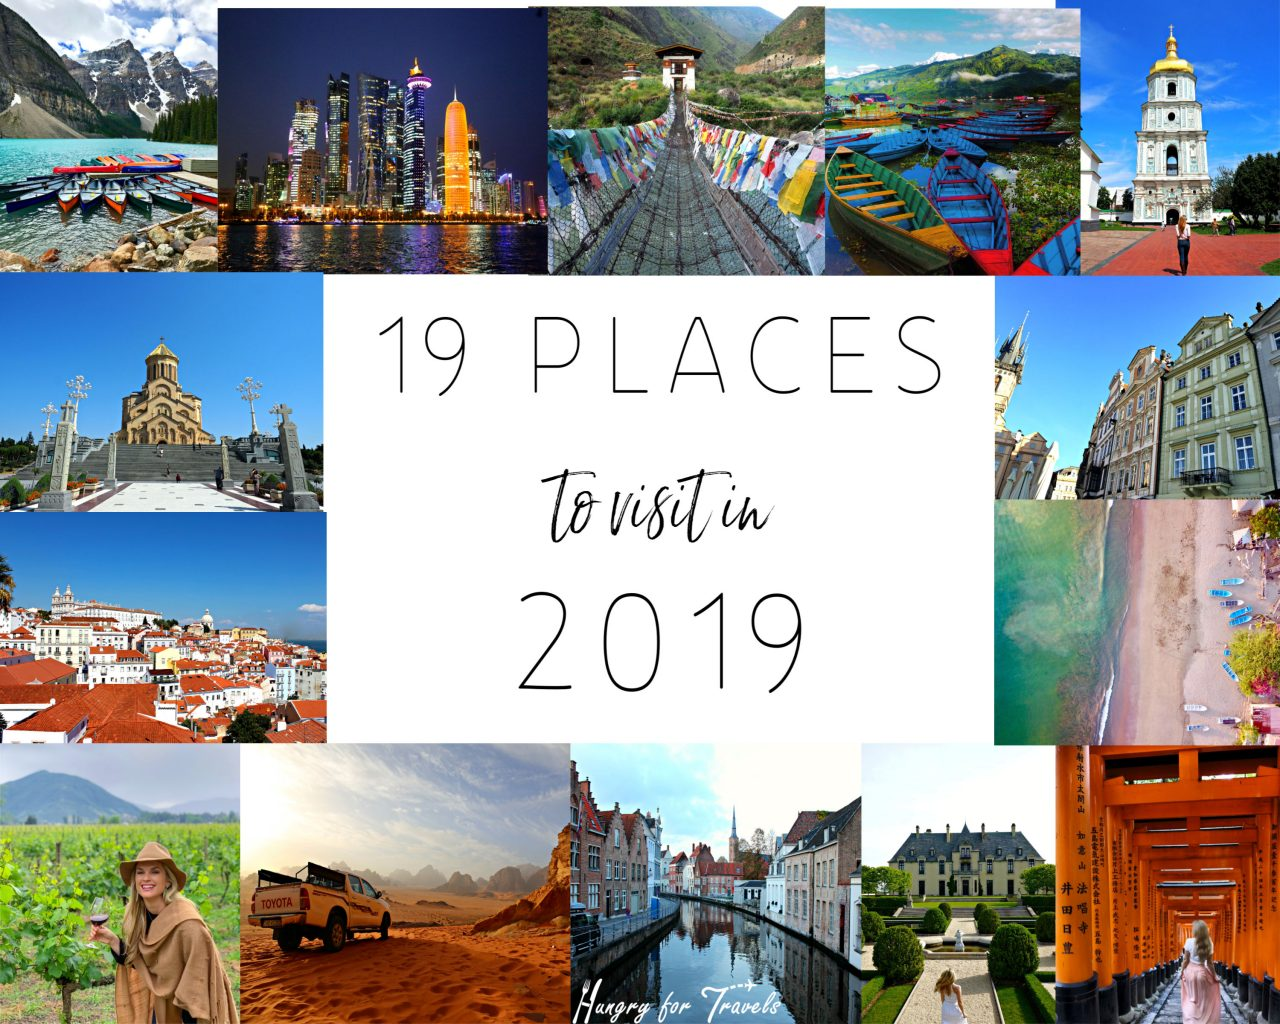 Best Places To Visit 2019 19 Places To Visit In 2019 | Hungry for Travels | Travel Tips and